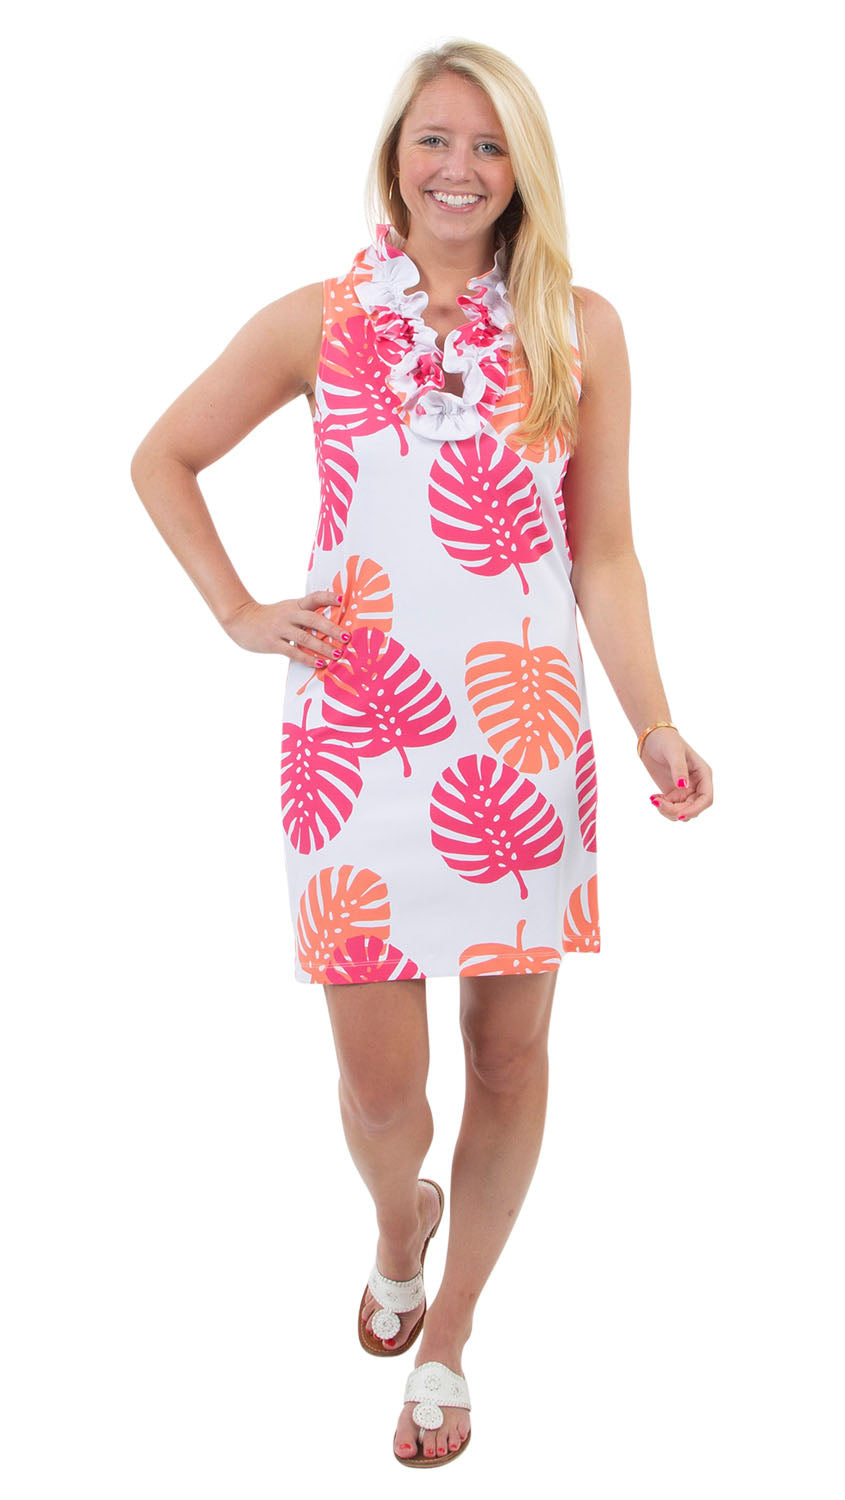 Skipper Dress - Hot Pink/Salmon Dancing Palms- SAMPLE FINAL SALE